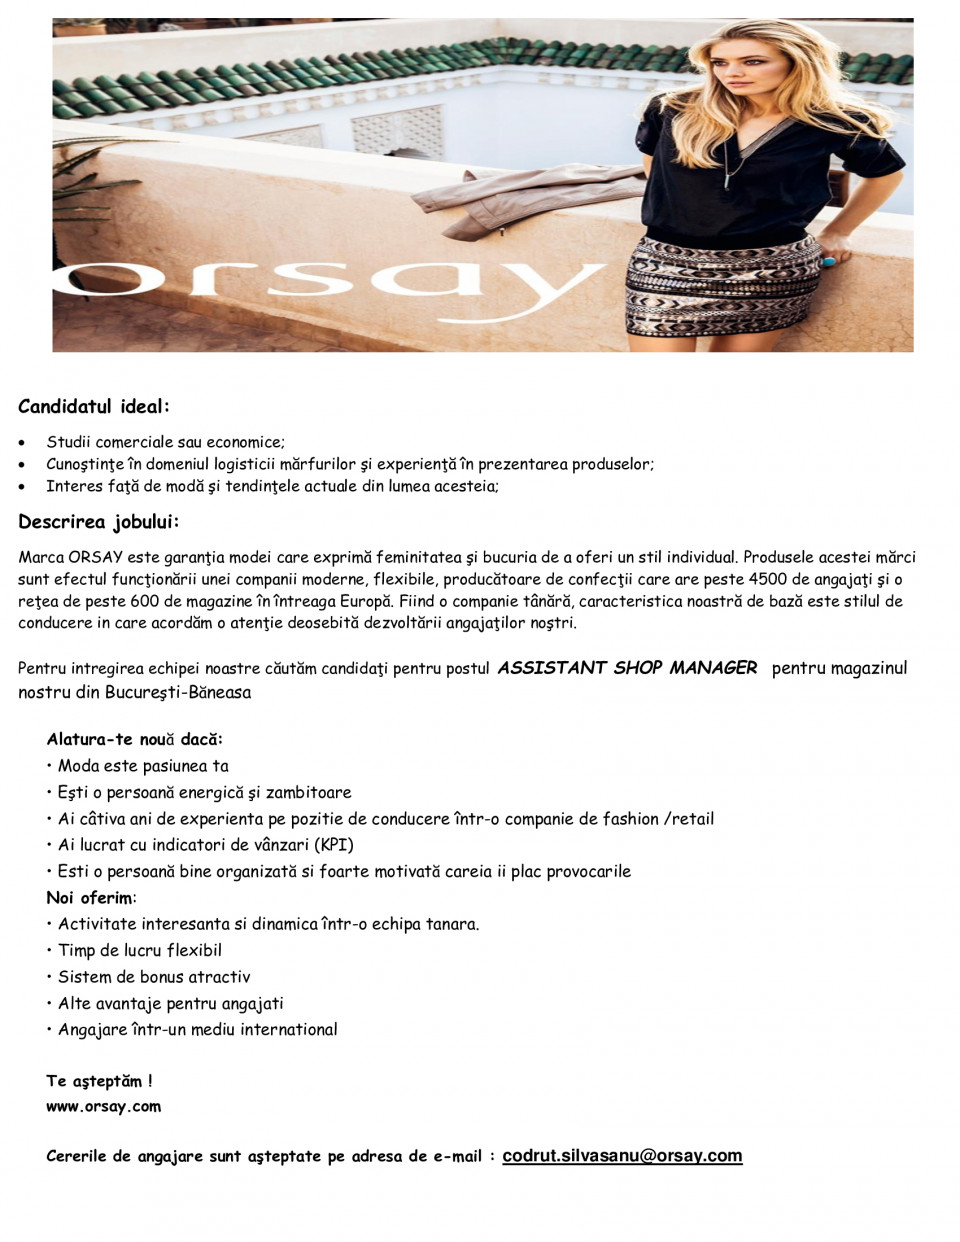 assistant shop manager - bucuresti baneasa  orsay